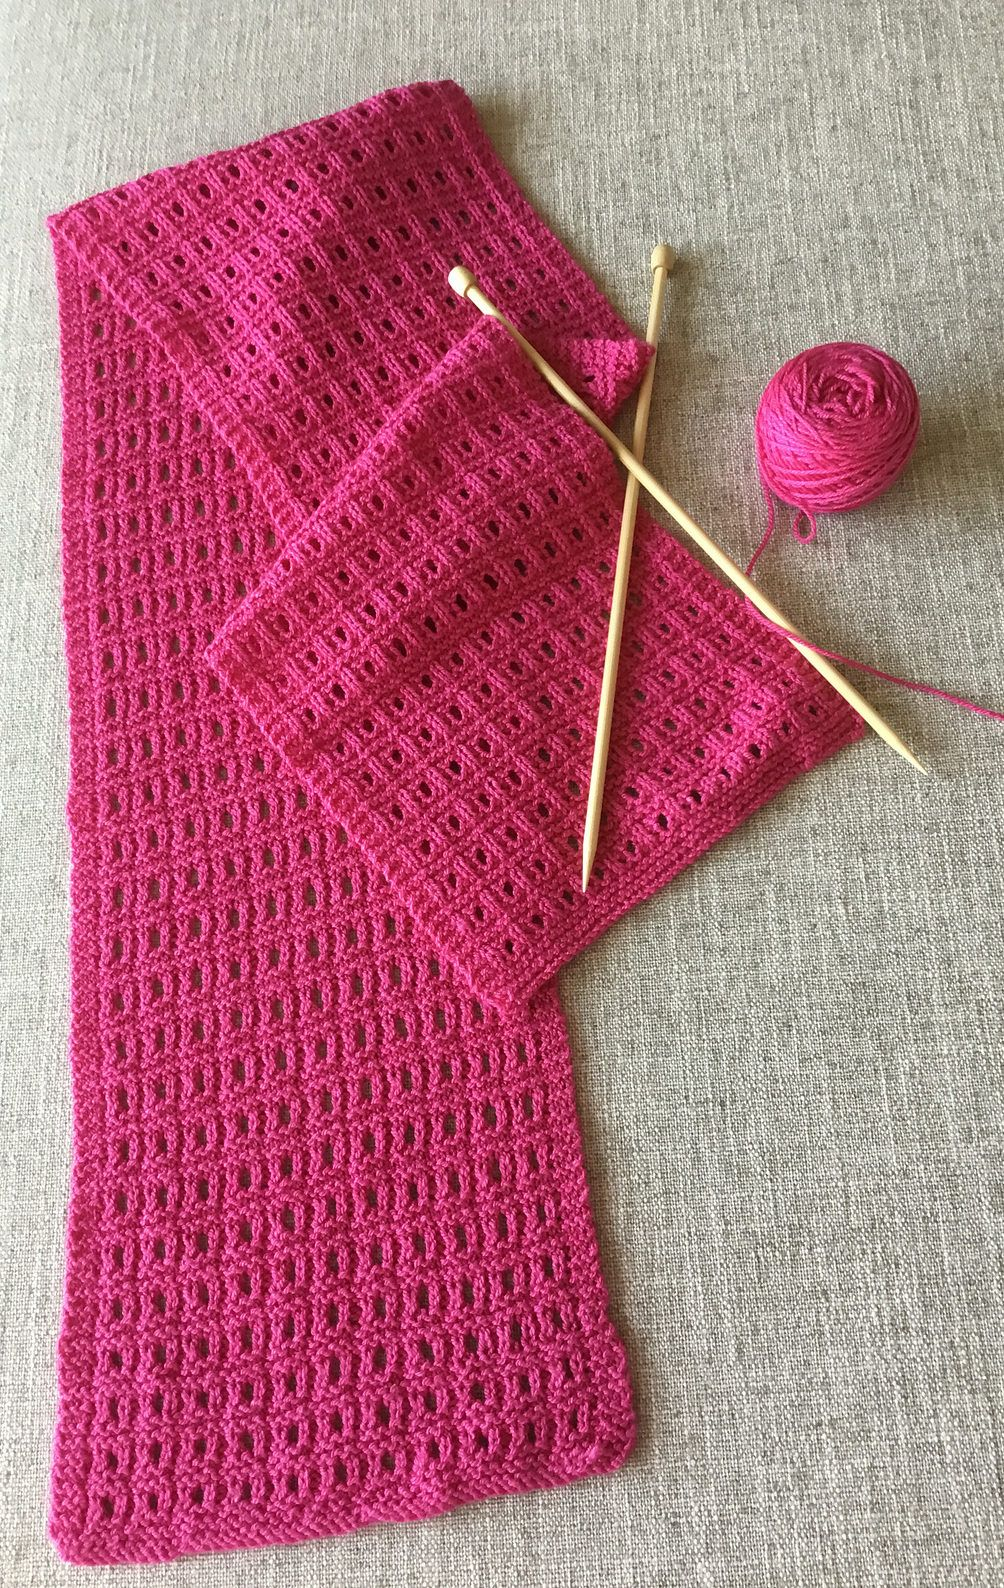 Free knitting pattern for easy reversible sheesha scarf this free knitting pattern for easy reversible sheesha scarf this scarf combines lace and texture in a simple grid like pattern with a six row repeat worked bankloansurffo Gallery